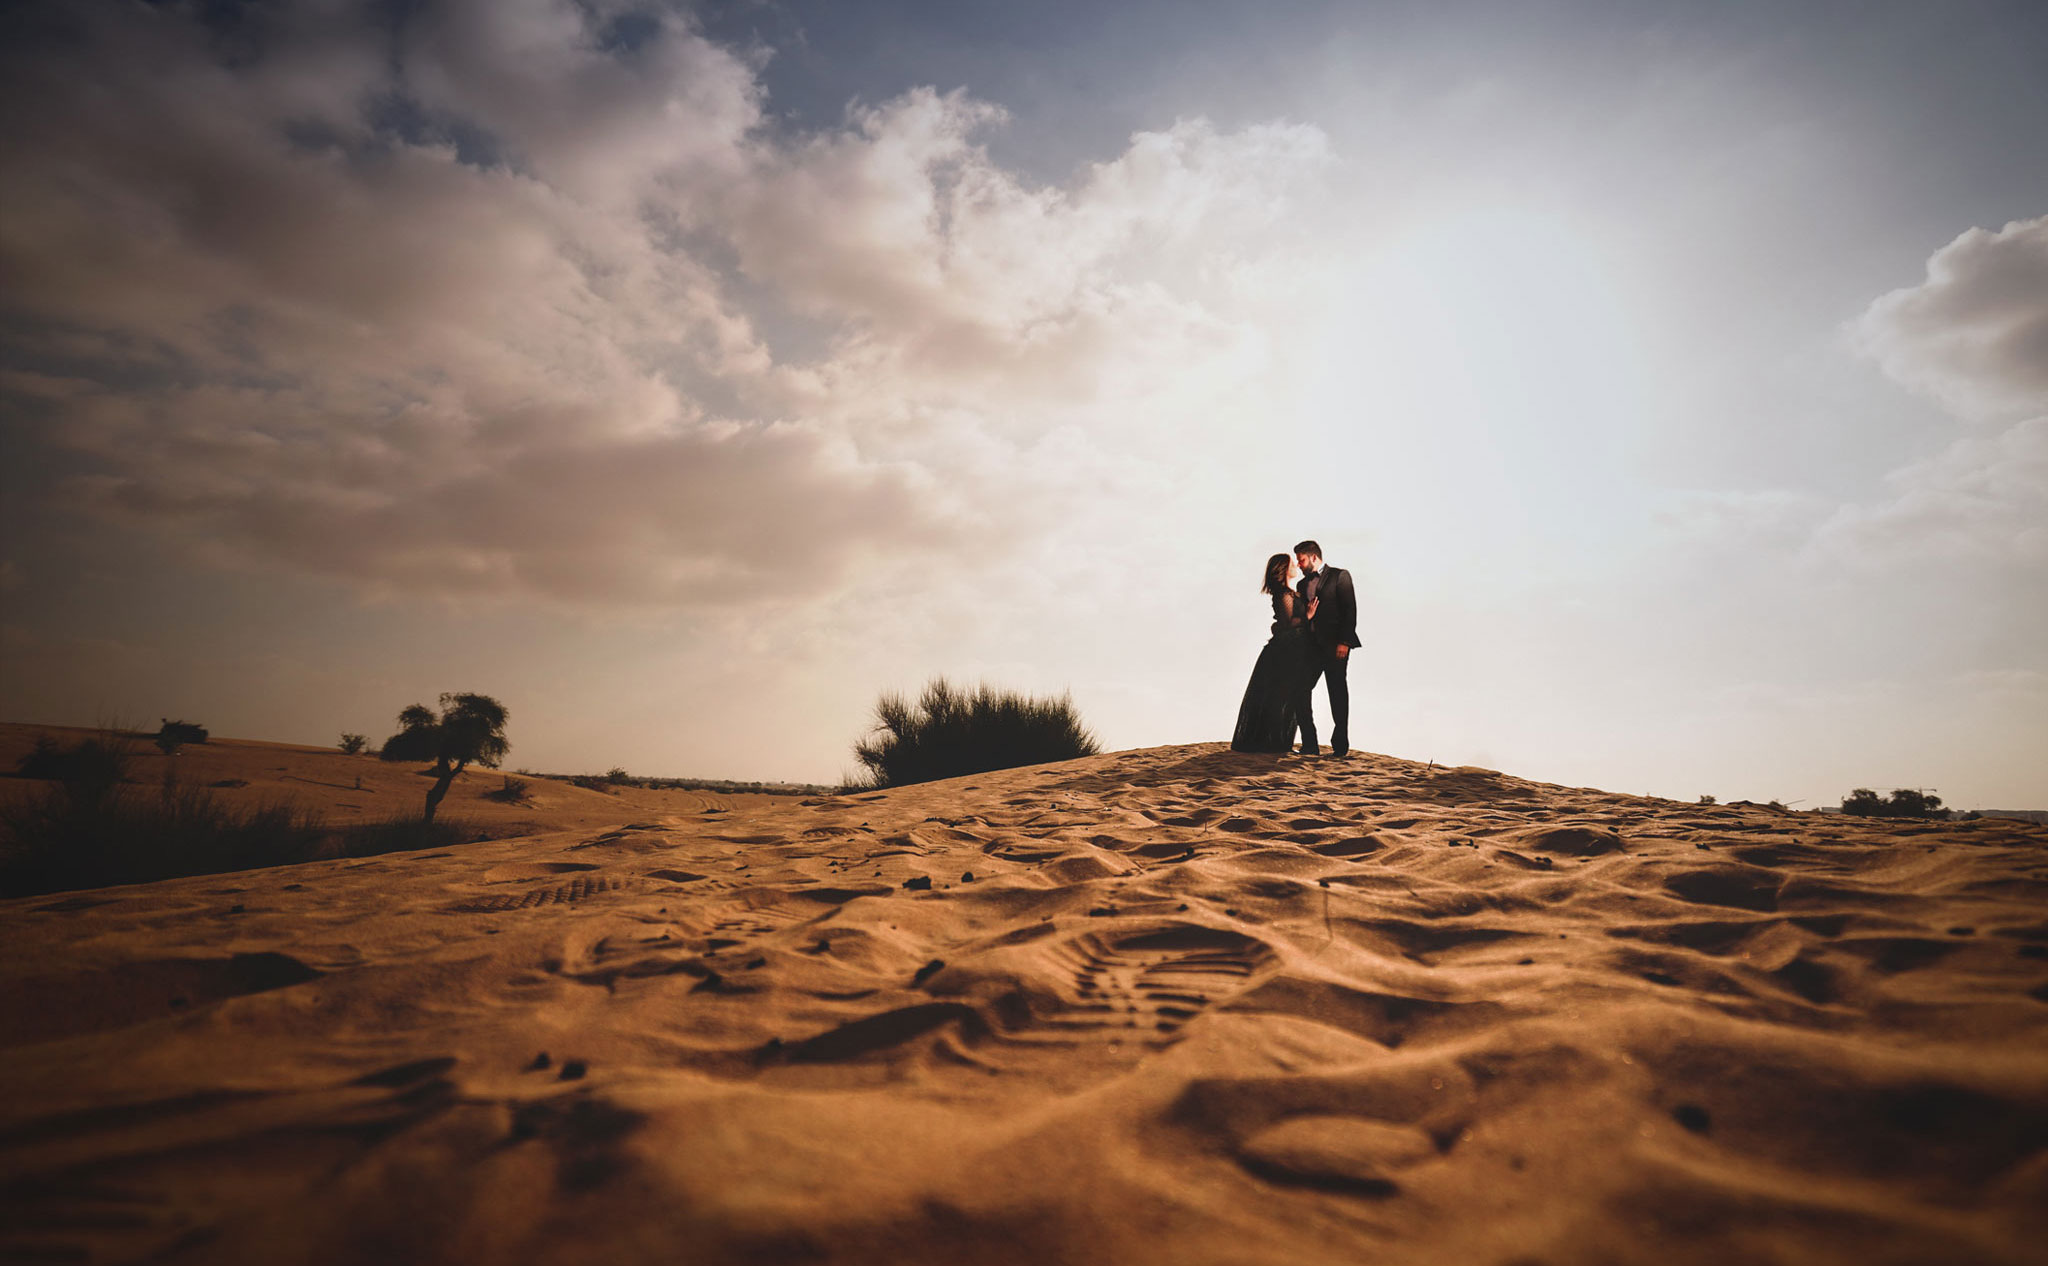 silhouette-Couple-Shoot-Dubai-Desert---2